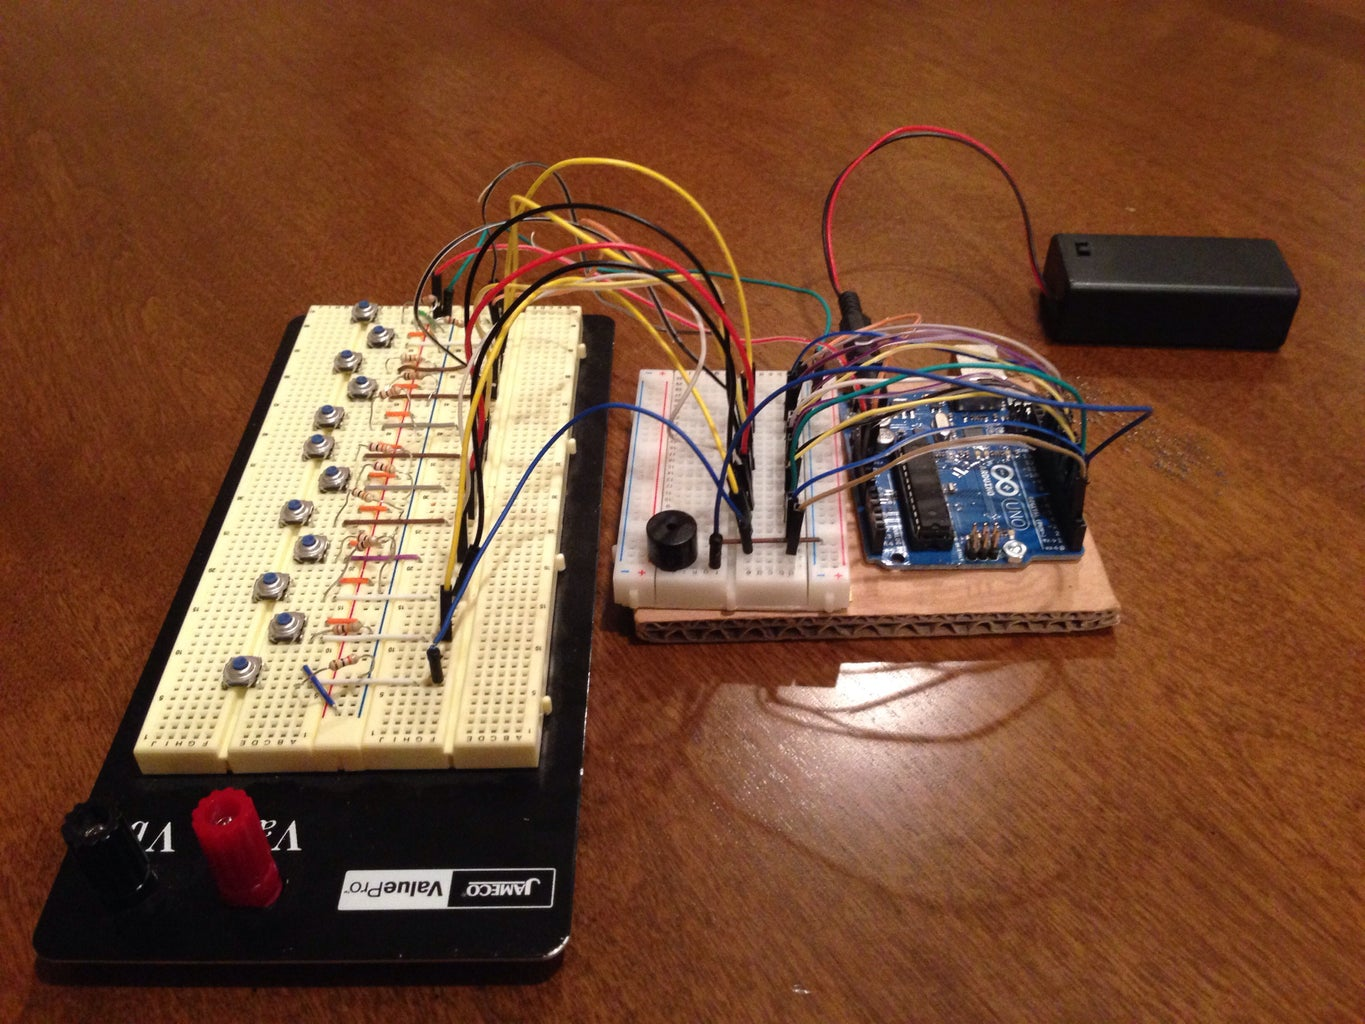 Connecting Wires From Arduino Board to Breadboard 1